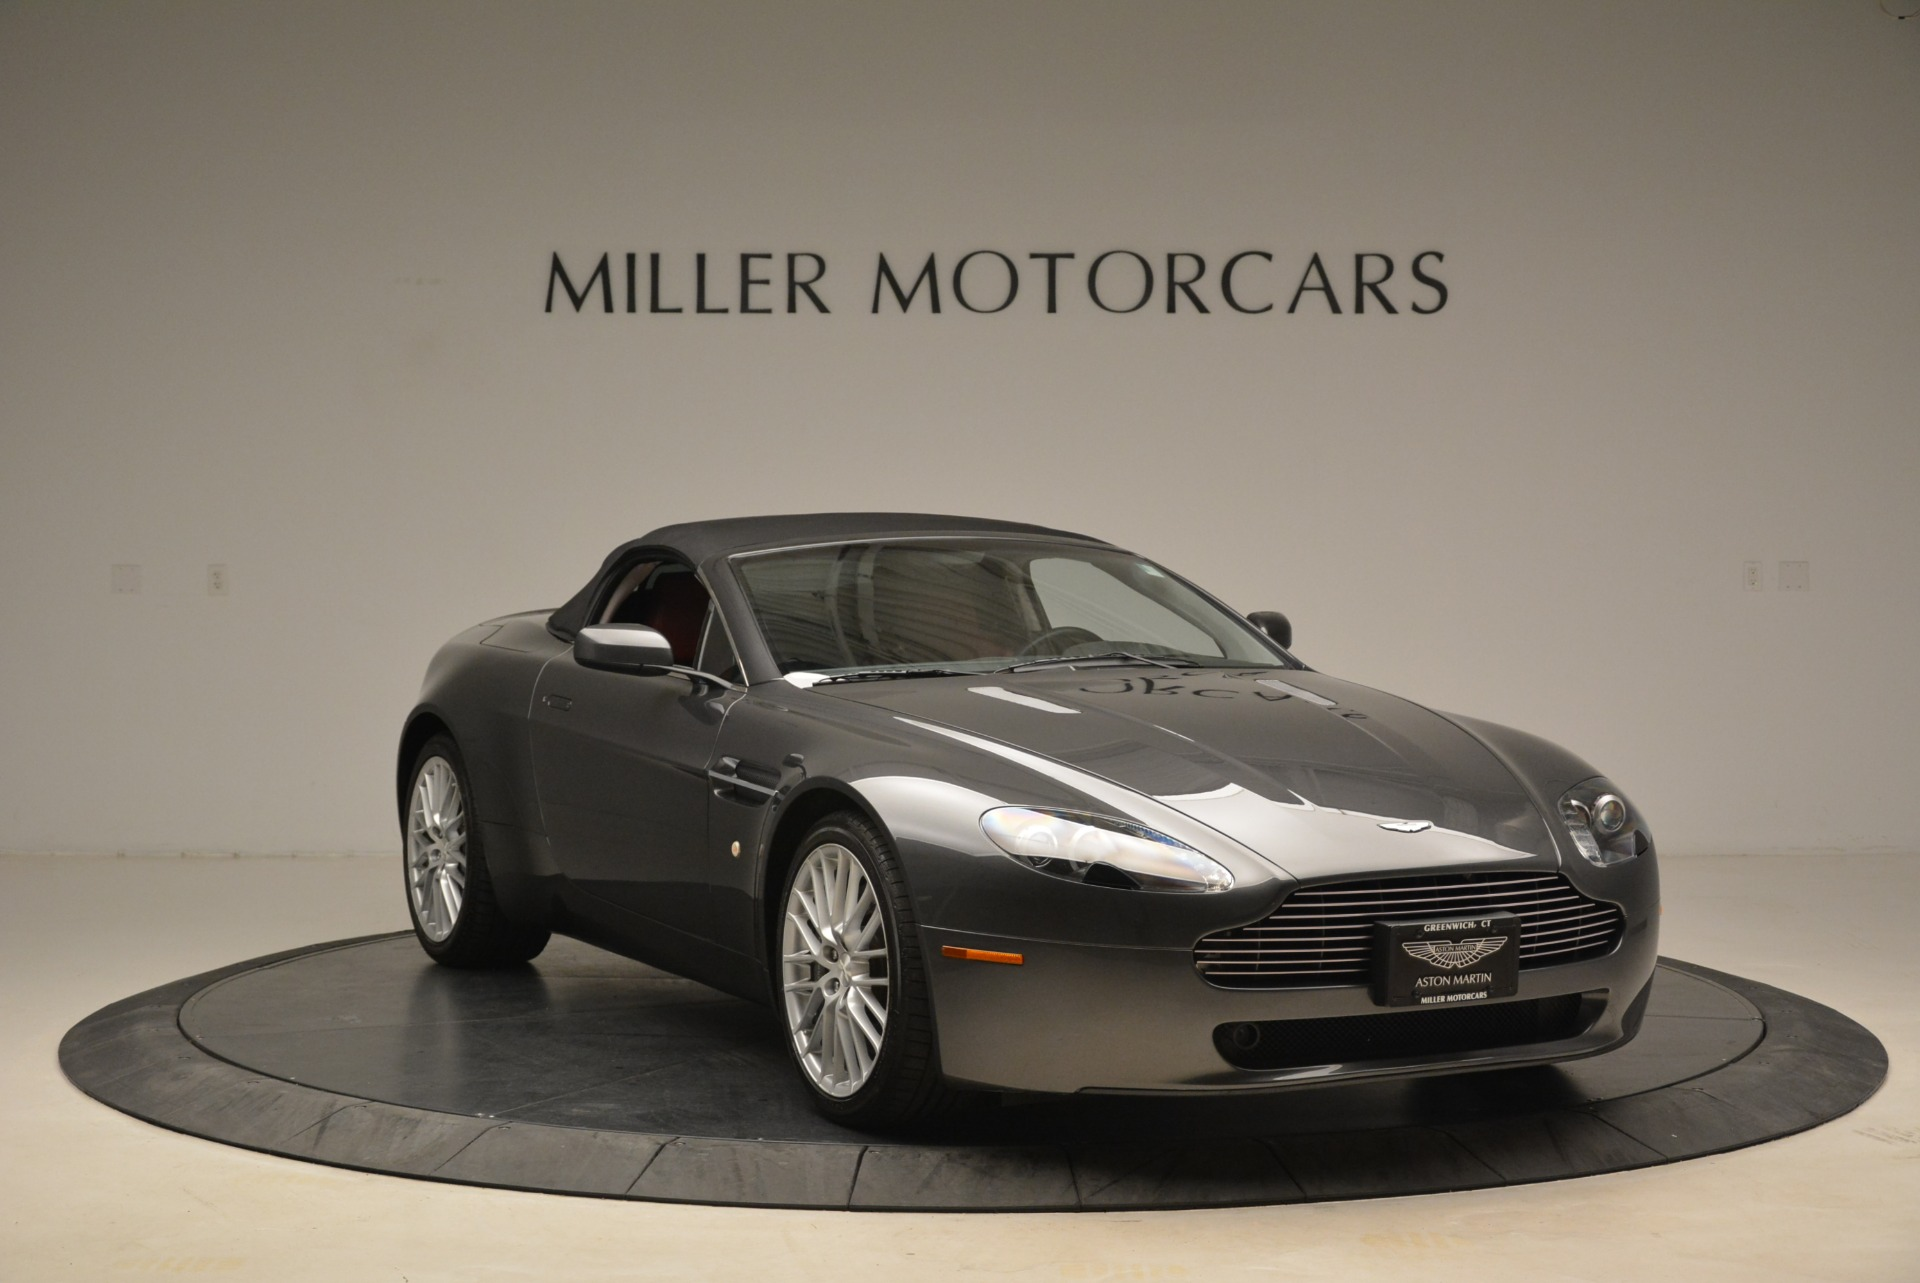 Used 2009 Aston Martin V8 Vantage Roadster For Sale In Greenwich, CT. Alfa Romeo of Greenwich, 7333 2123_p23